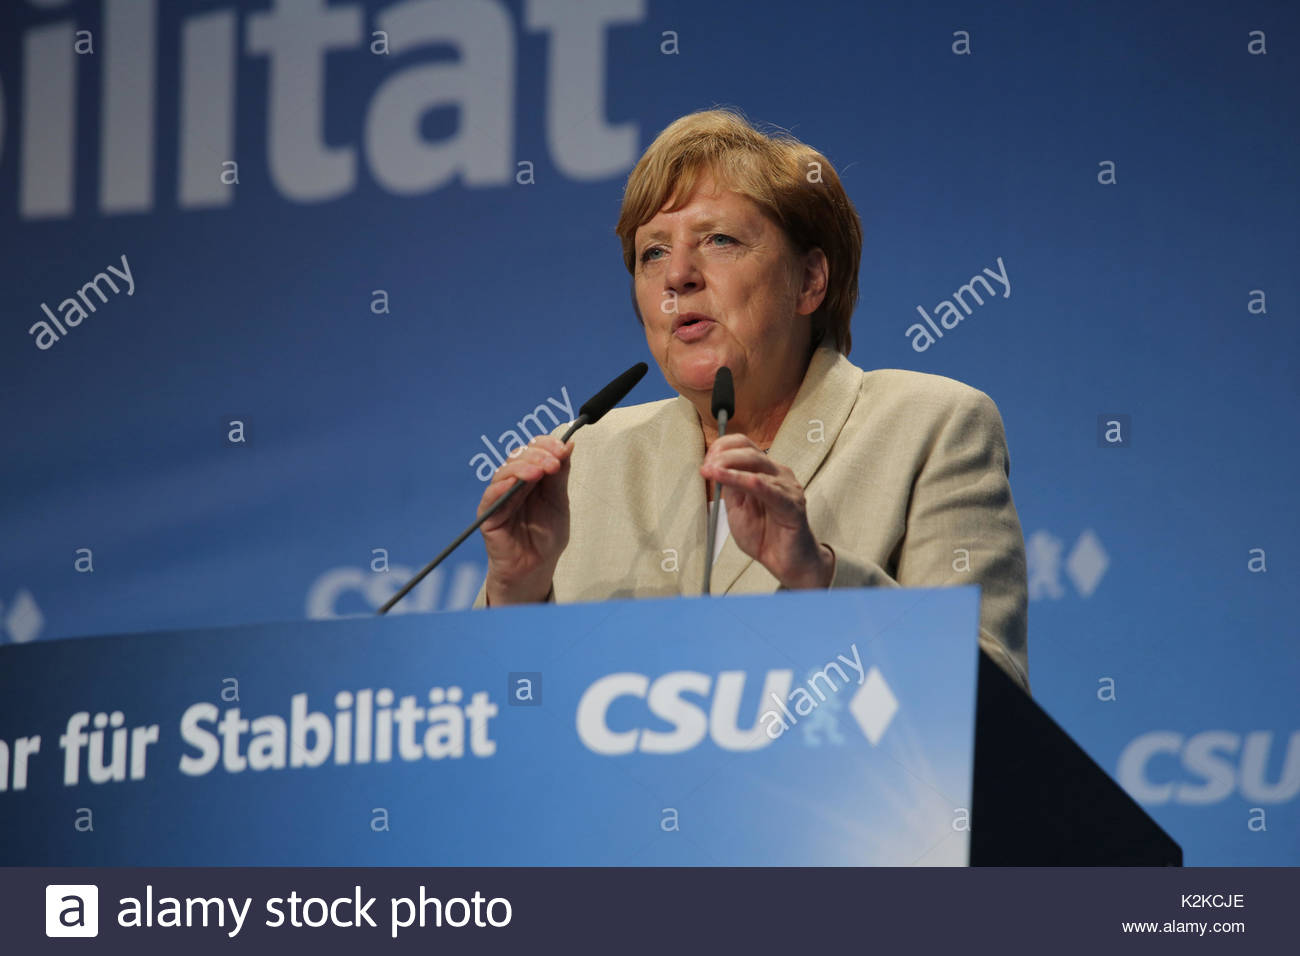 Angela Merkel lowers the microphones as she begins to speak to a large crowd in Erlangen, Bavaria. She is on the campaign trail in the run up to the German election which is taking place on Sunday, September 24.Merkel spoke for over forty minutes and was well received though a small group of protestors tried to interrupt her speech with whistles and catcalls. - Stock Image